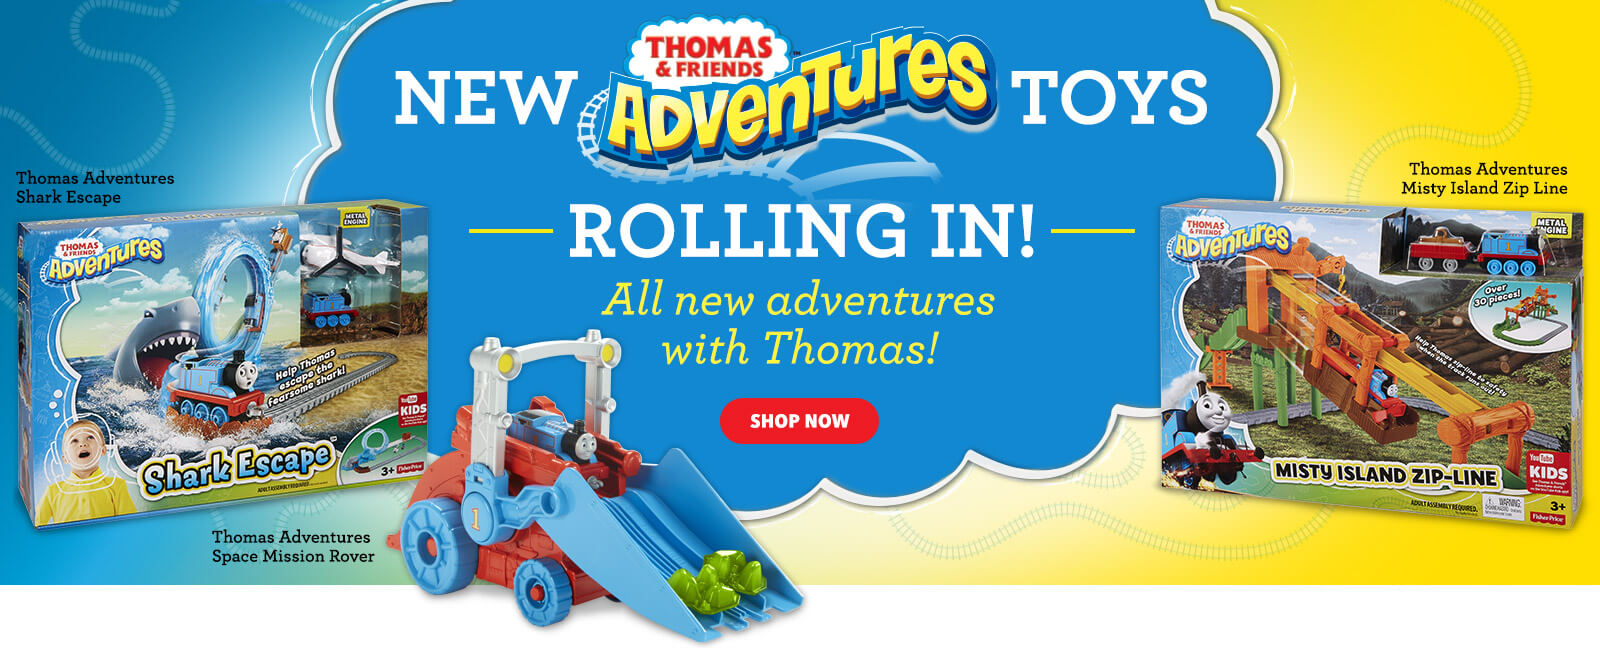 New Thomas & Friends Adventures Toys!